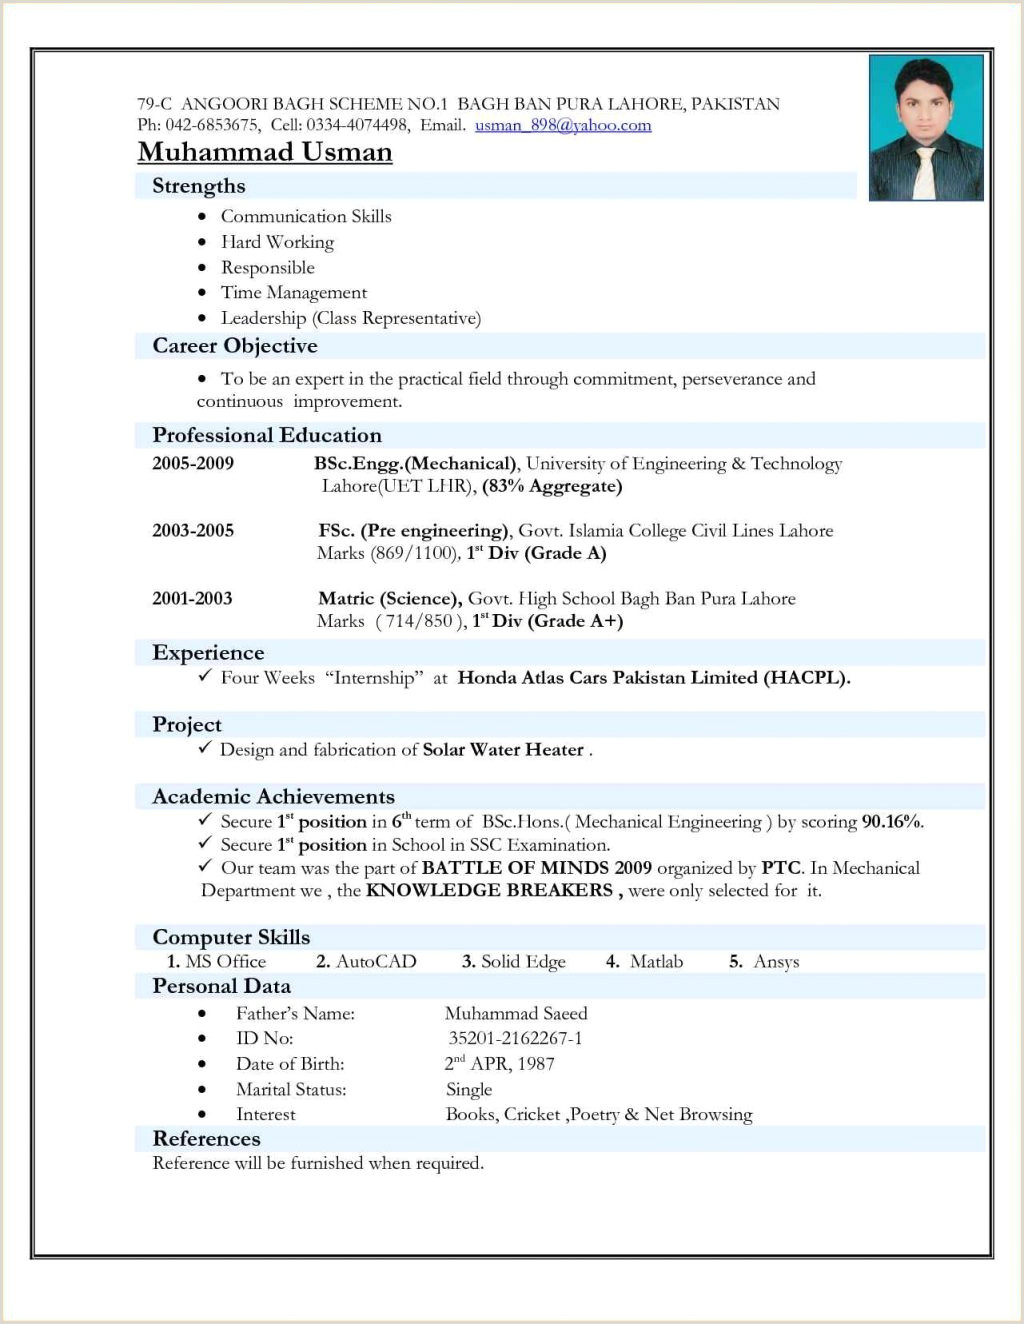 Resume Format For Engineering Freshers Pdf